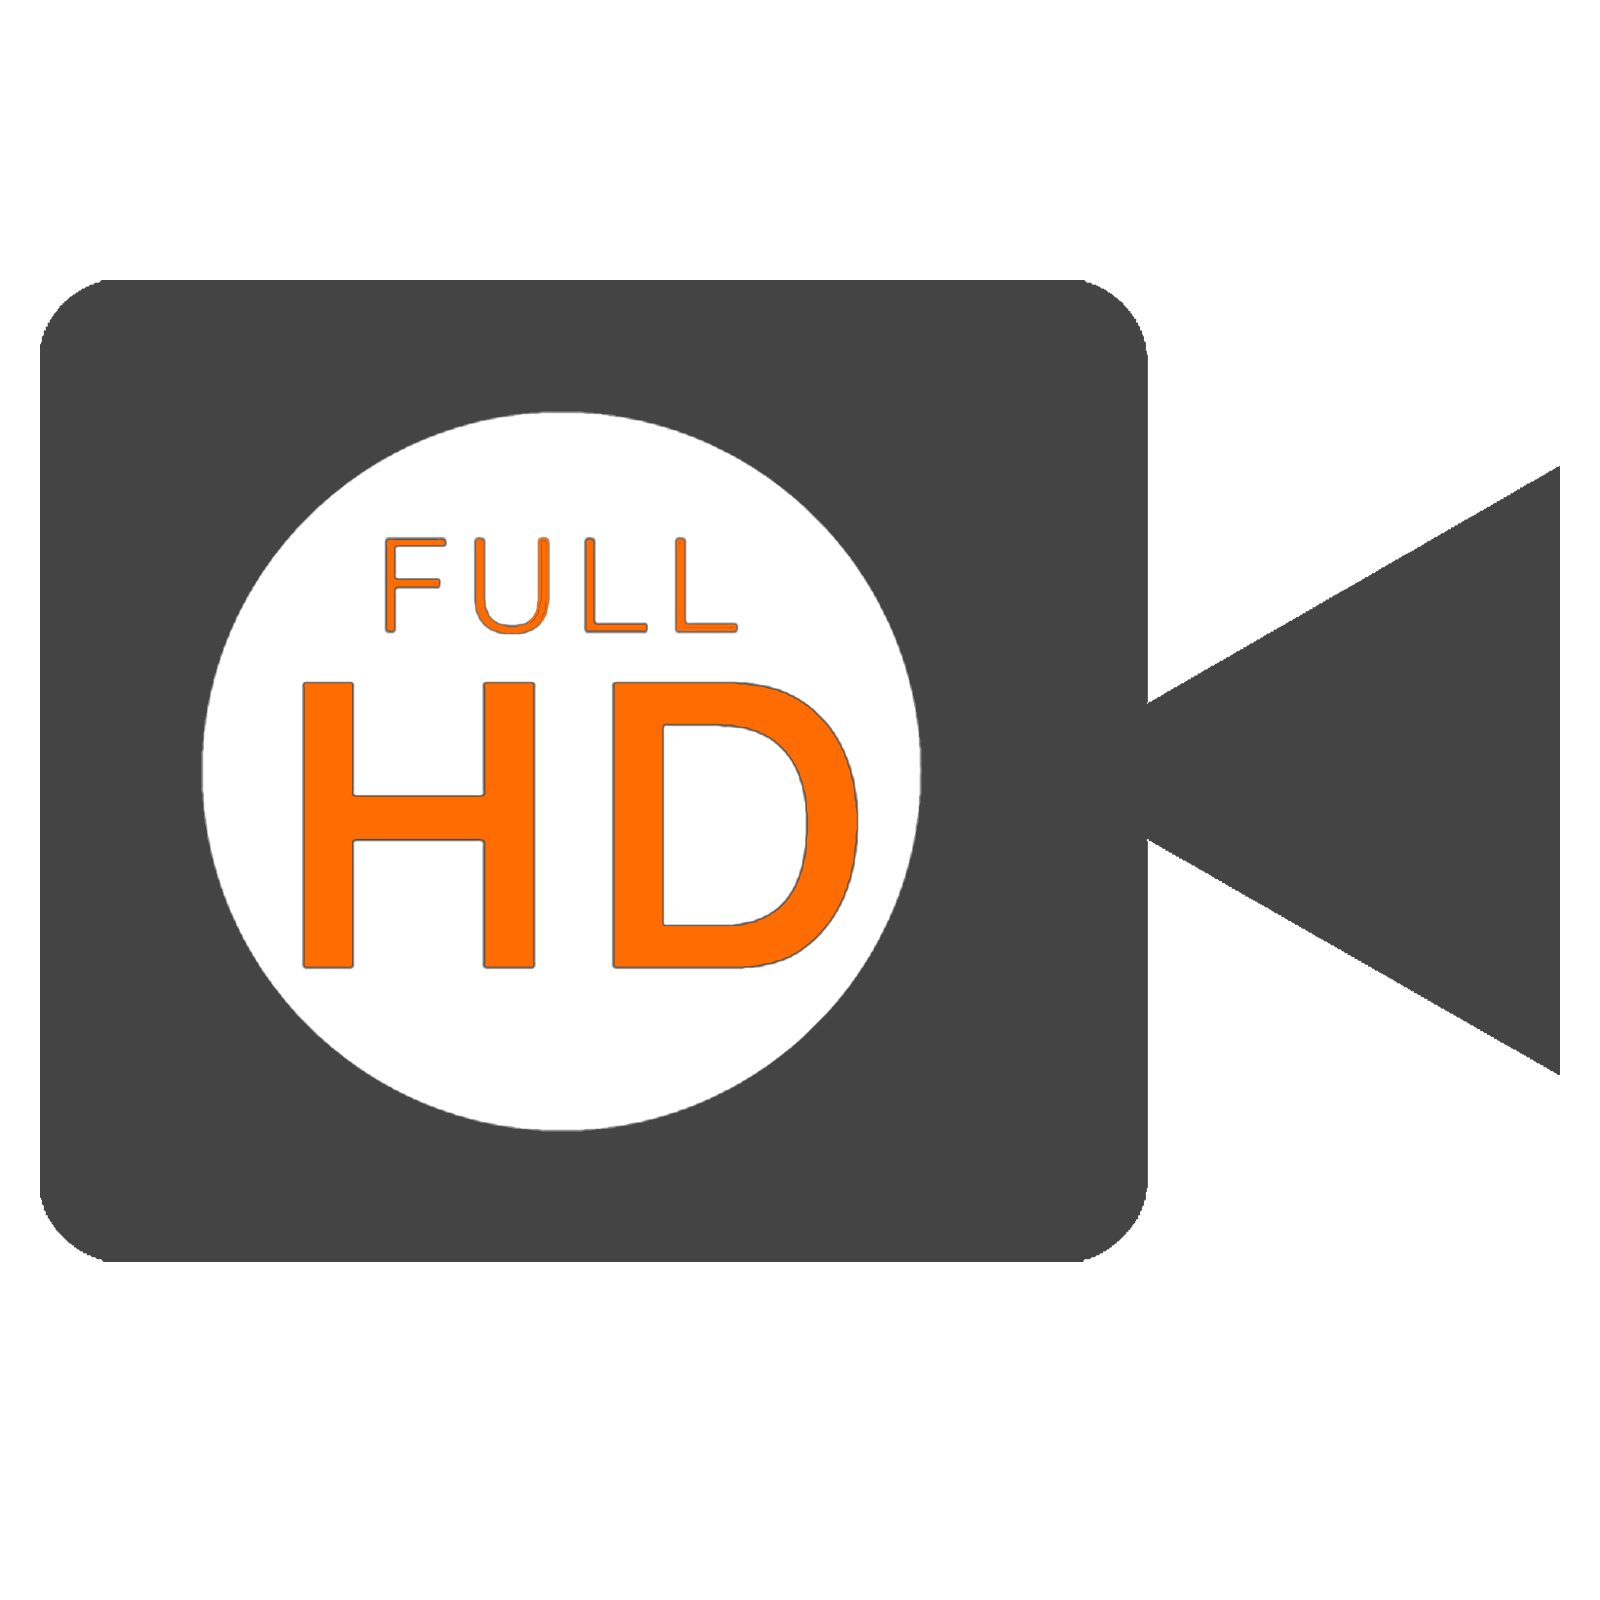 https://i2.wp.com/haultech.co.uk/wp-content/uploads/2021/03/HaulTechs-Camera-Solutions-Record-in-Full-HD.png?fit=1600%2C1600&ssl=1